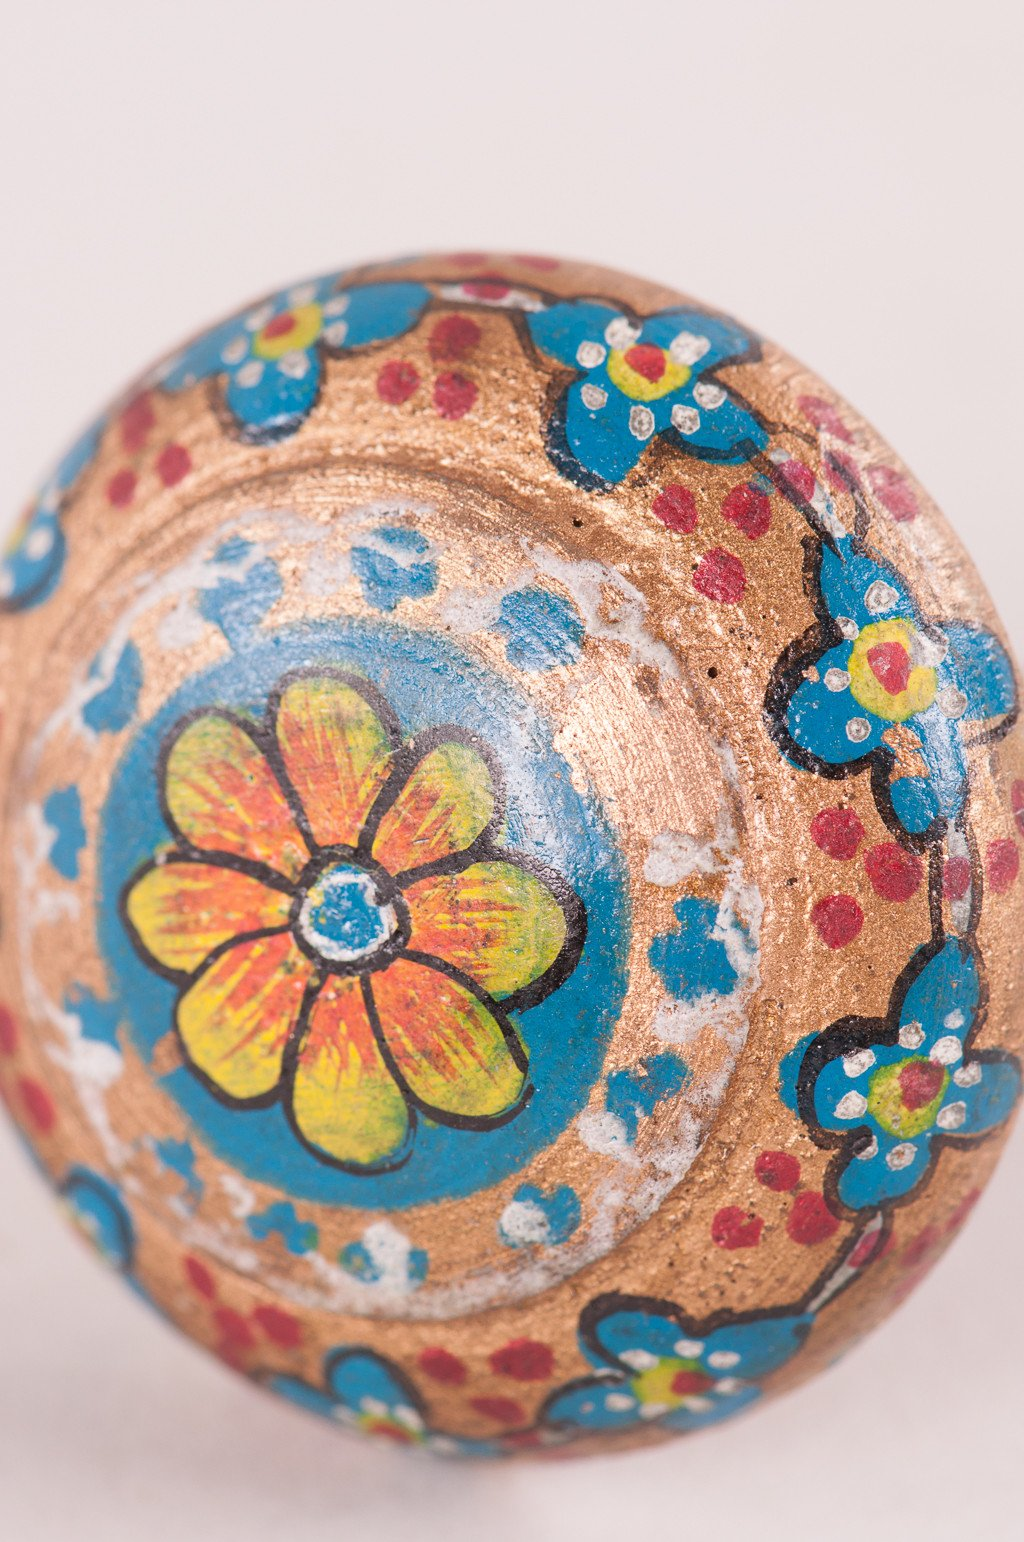 Blue & bronze hand painted wooden door knob